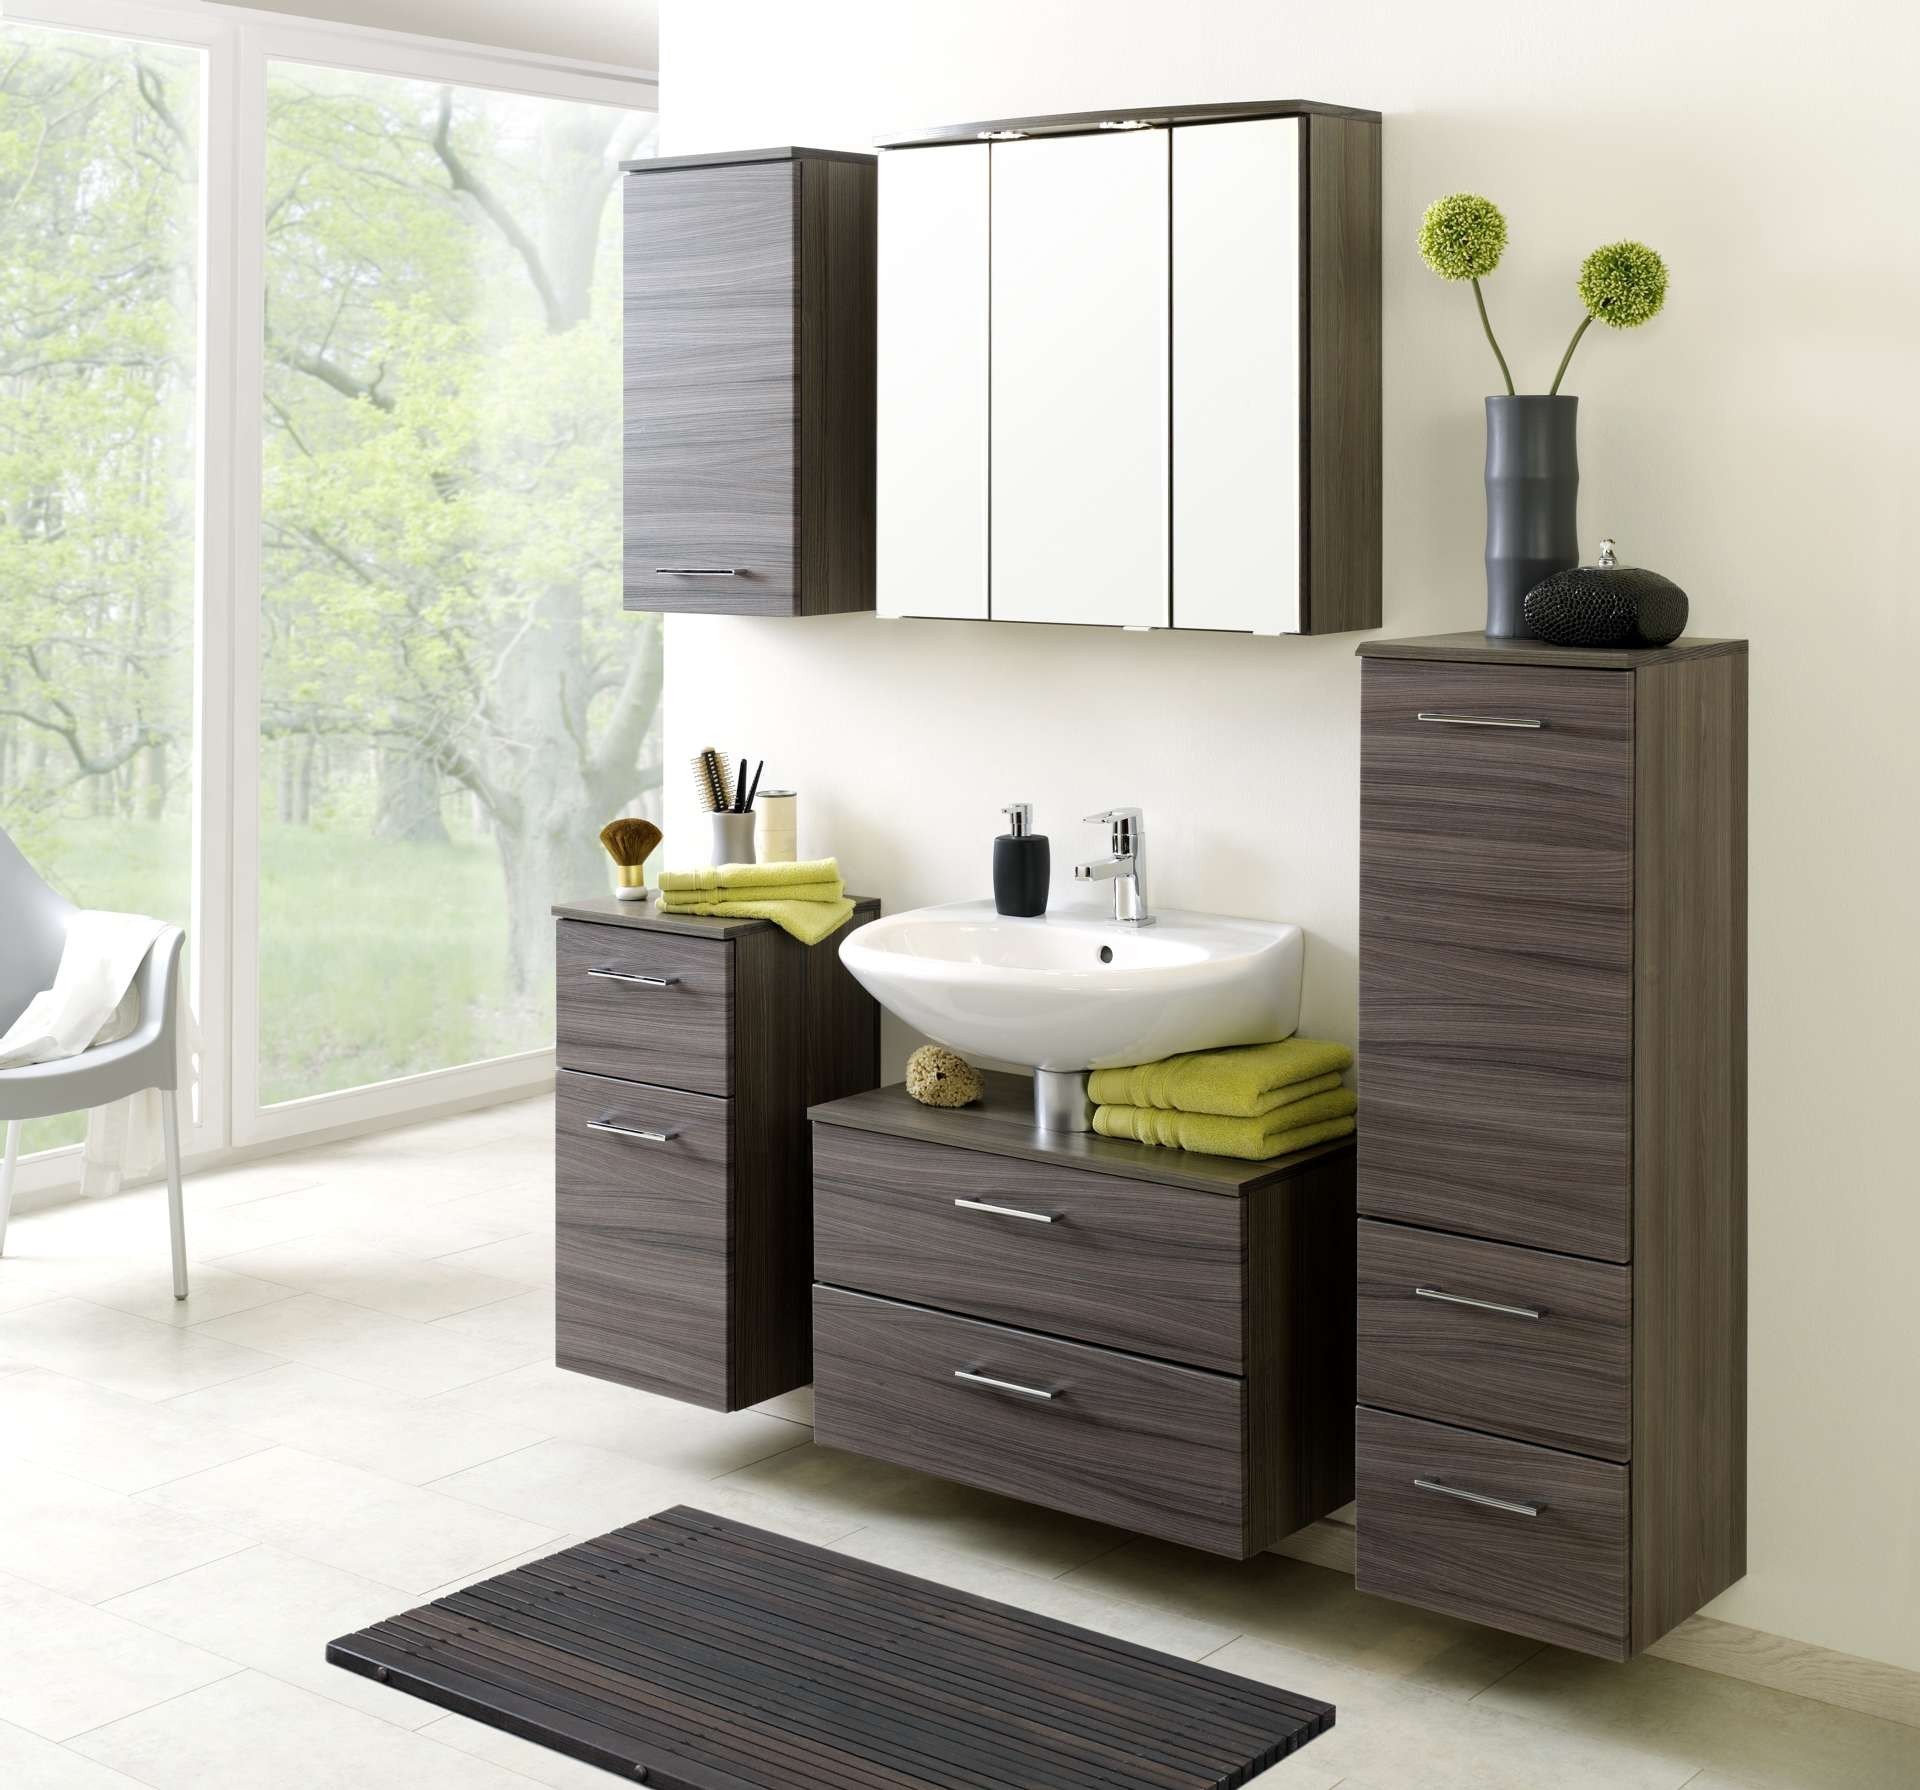 bad spiegelschrank marinello 3 t rig 70 cm breit. Black Bedroom Furniture Sets. Home Design Ideas